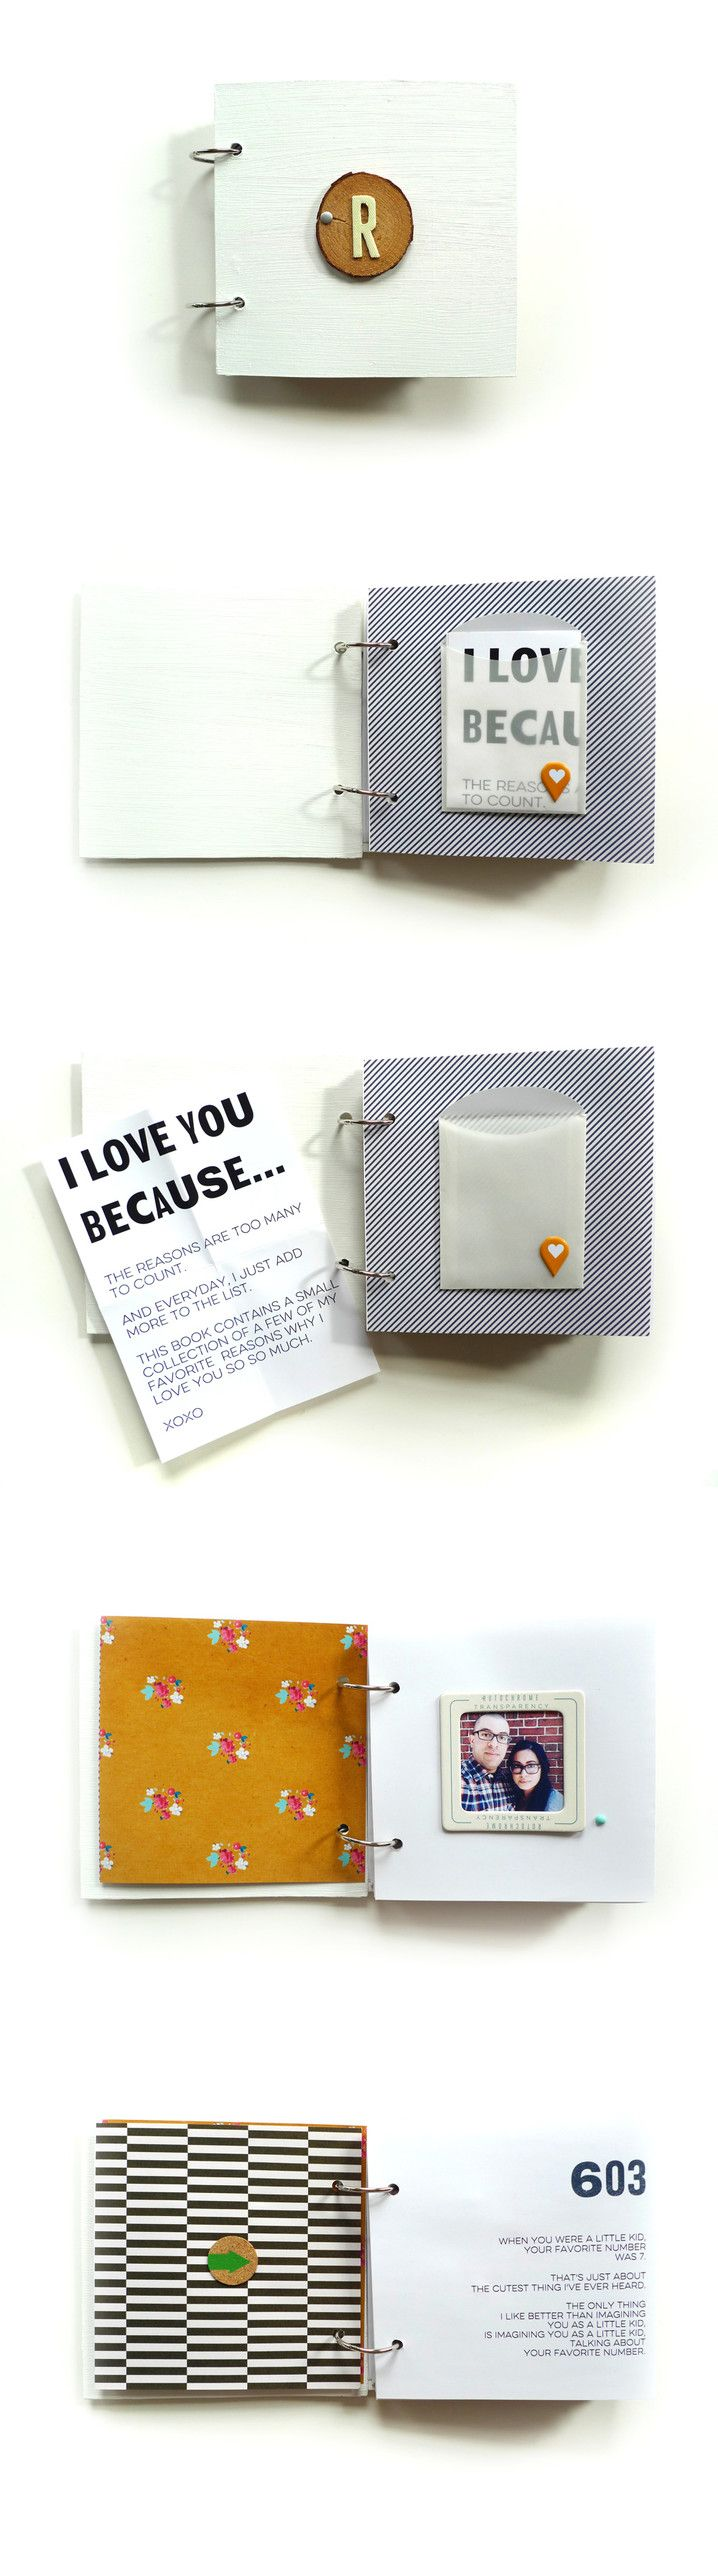 super special idea for someone you love - mini scrapbook with reasons why you love them and pictures